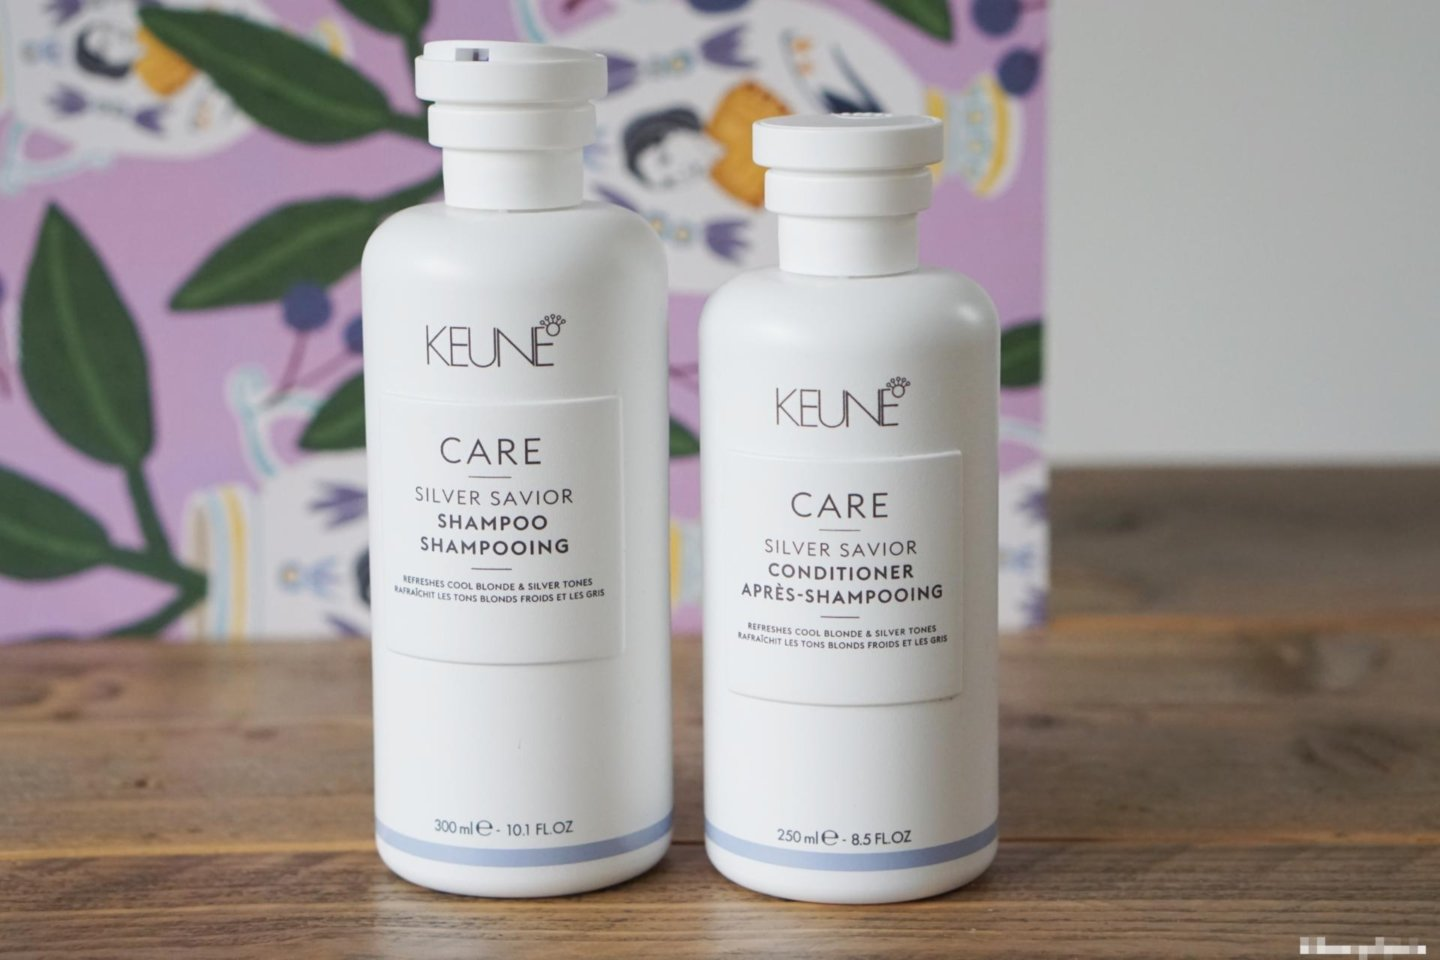 Review | De zilvershampoo en conditioner van Keune